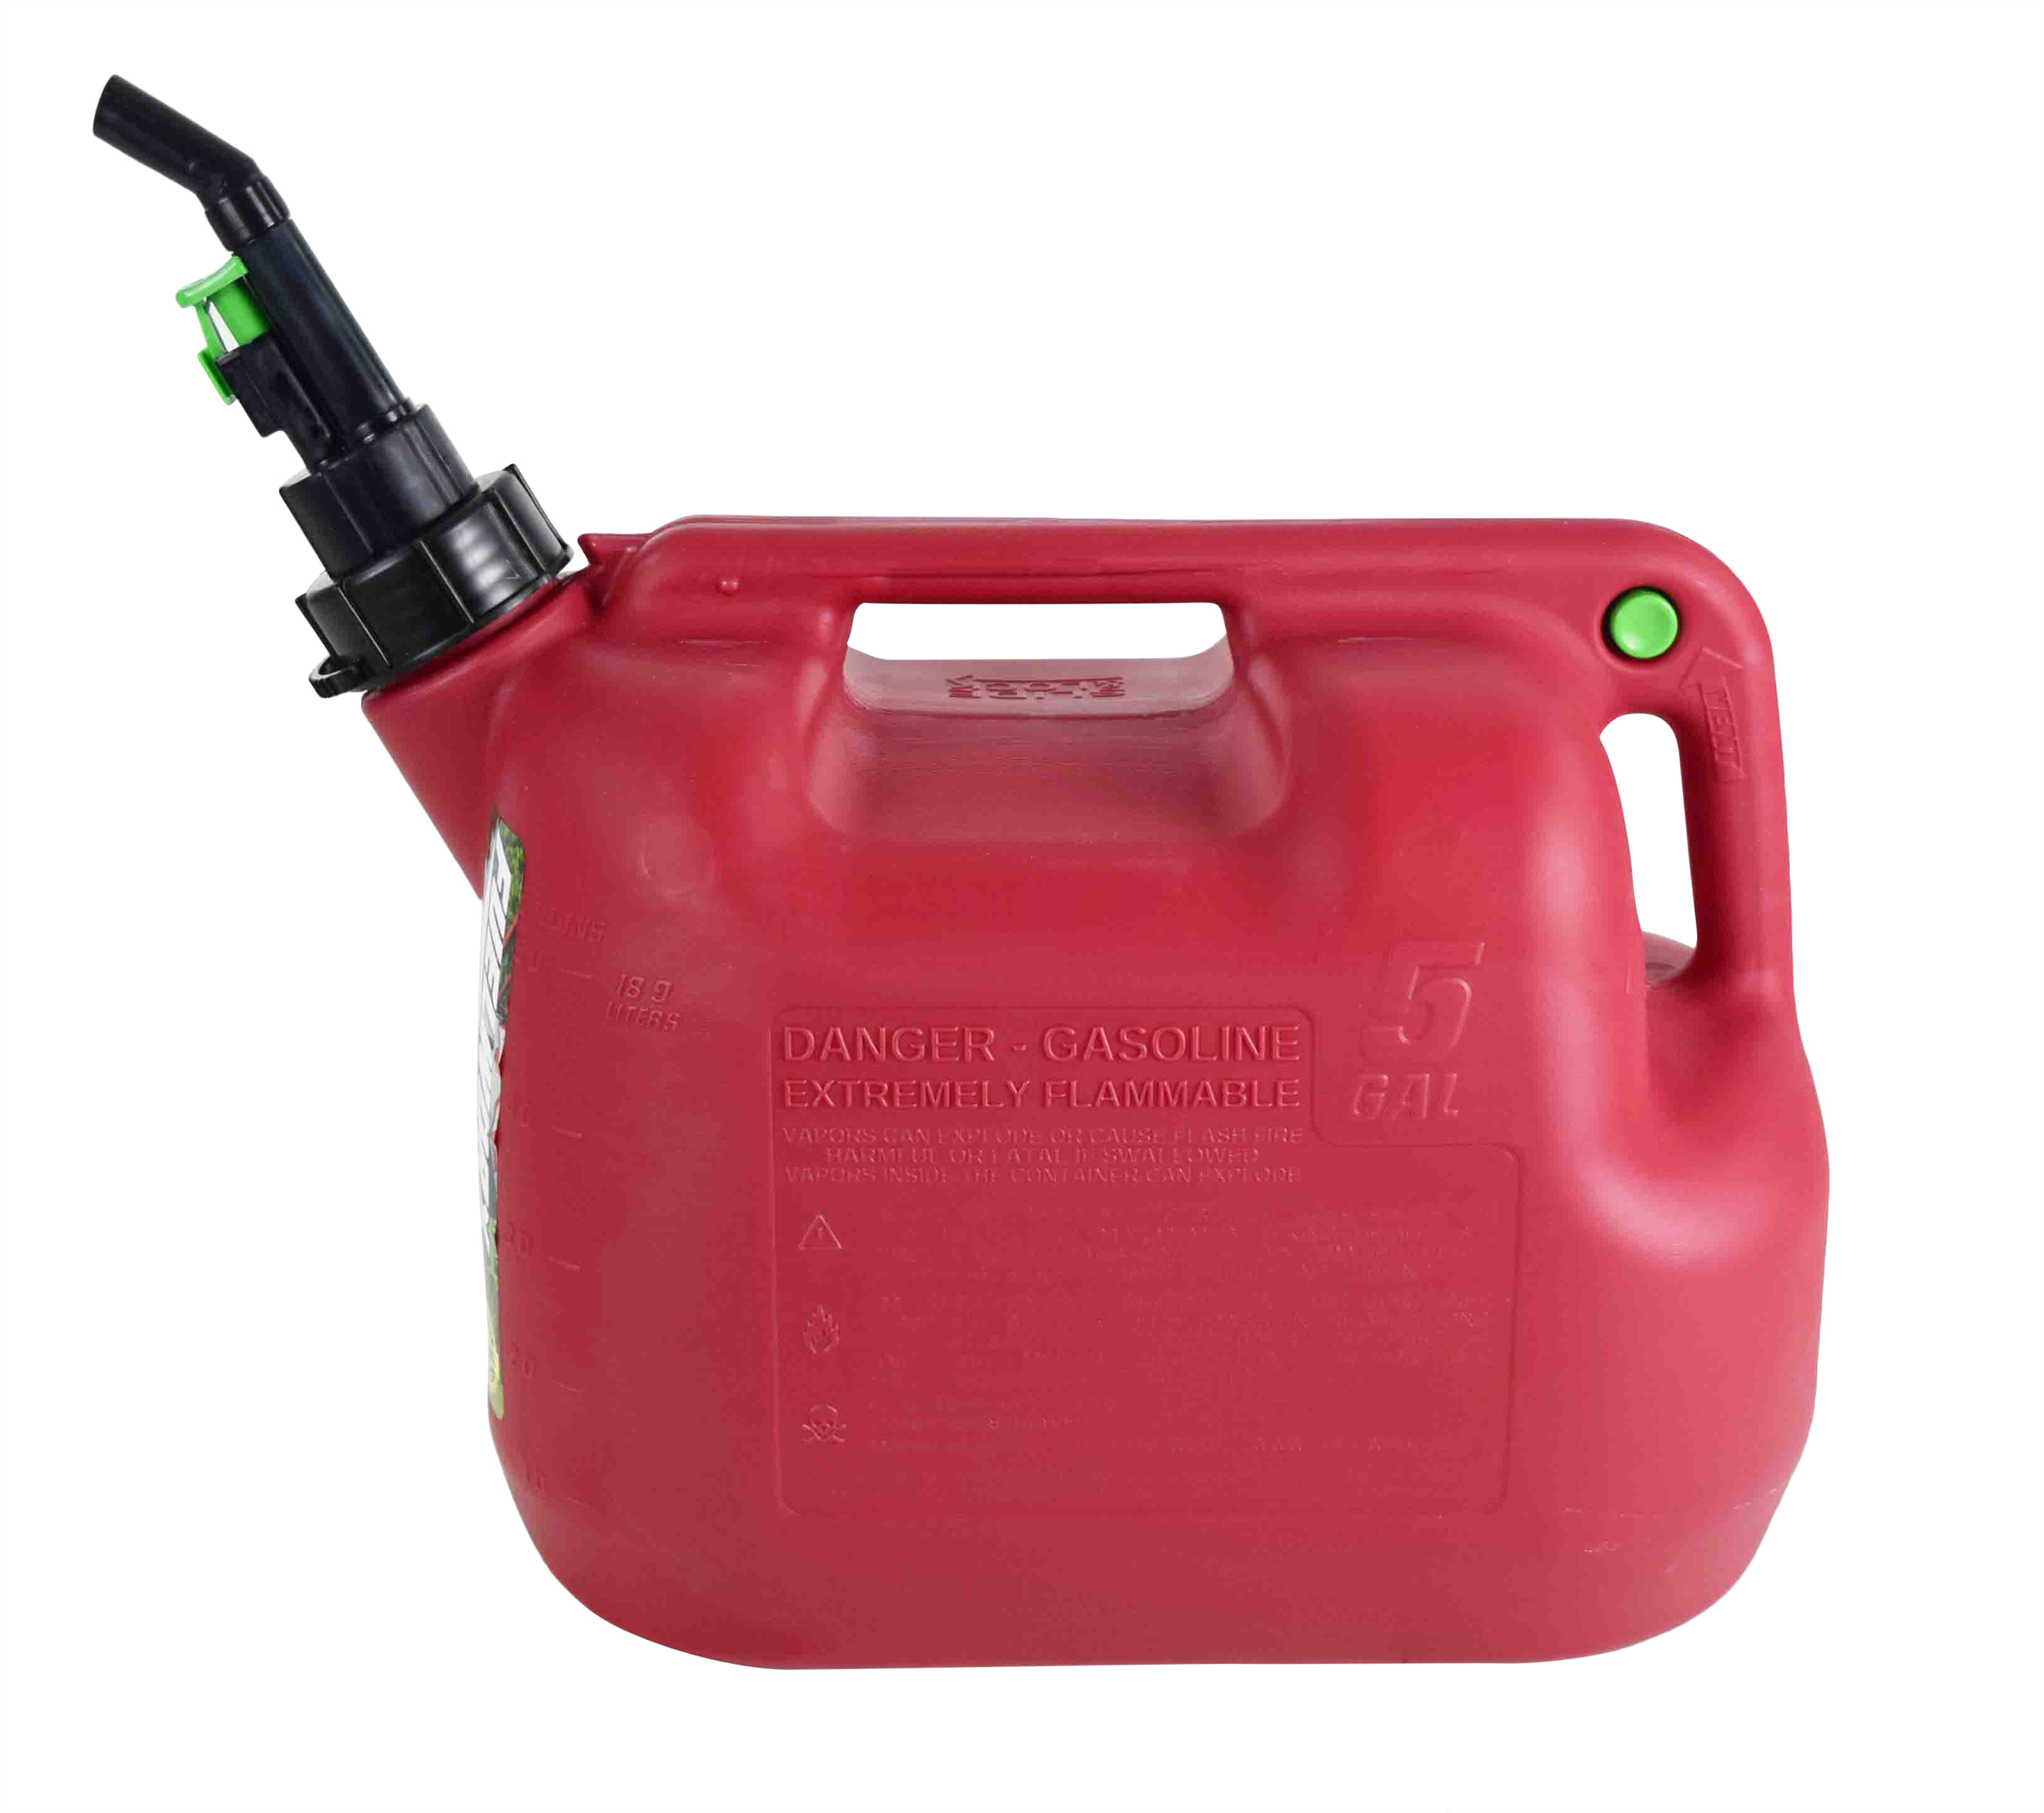 Fuelworx-Red-5-Gallon-Stackable-Fast-Pour-Gas-Fuel-Can-CARB-Compliant-Made-in-The-USA-5-Gallon-Gas-Can-Single-image-4